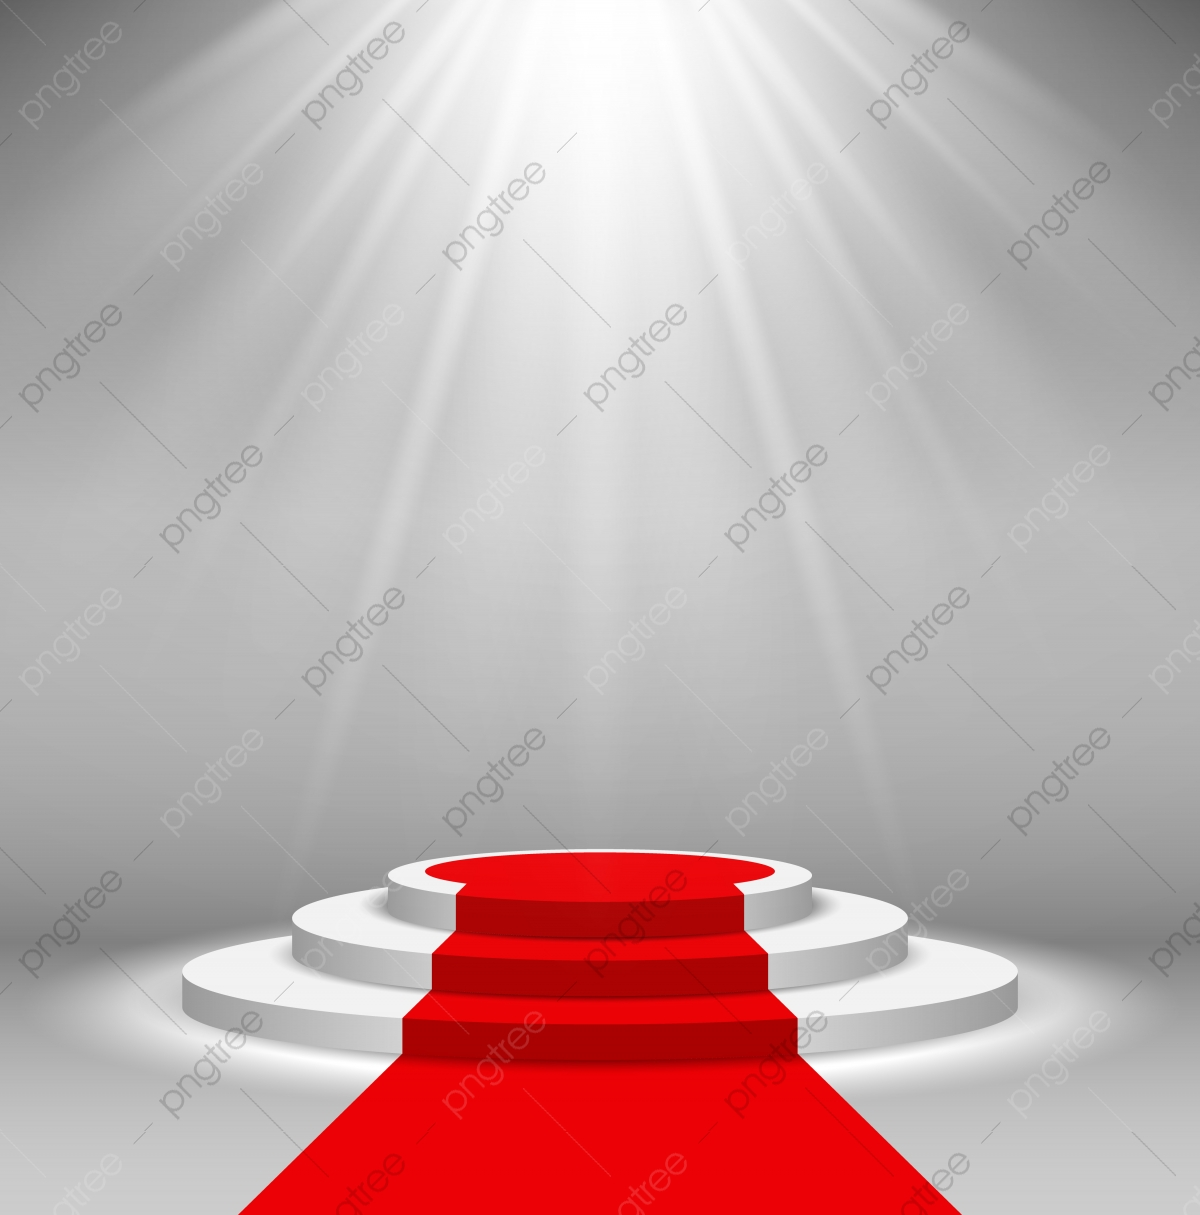 Staircase clipart red carpet. Stairs background png